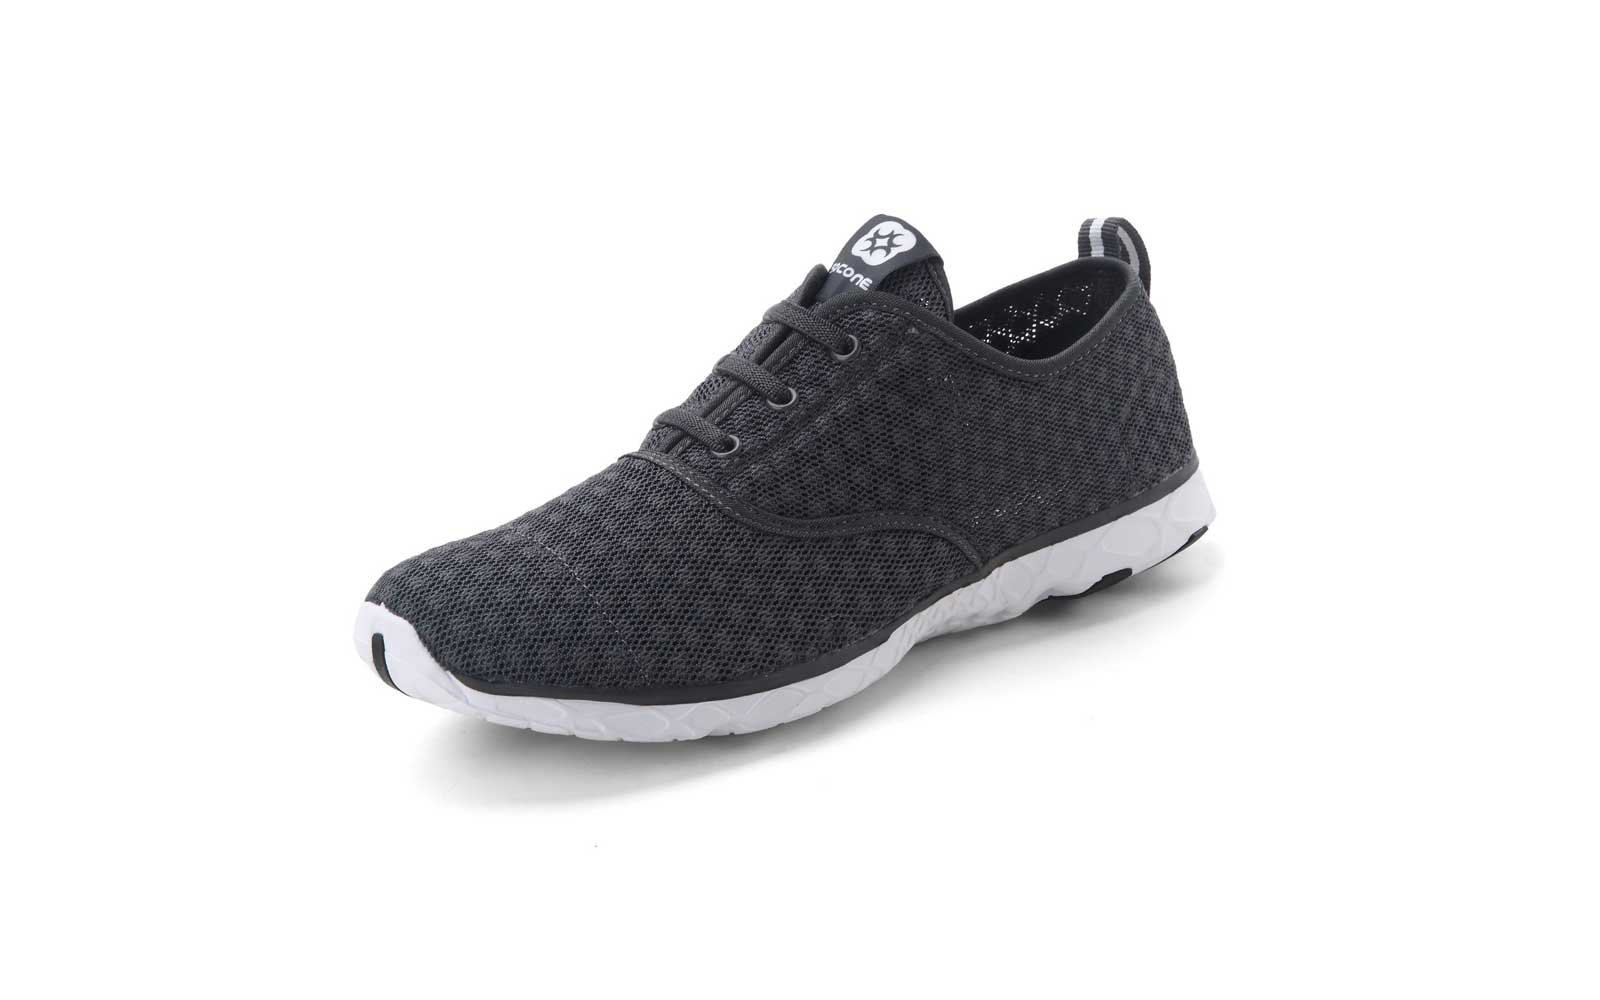 82c9a4d75 The Best Men s Water Shoes for 2019